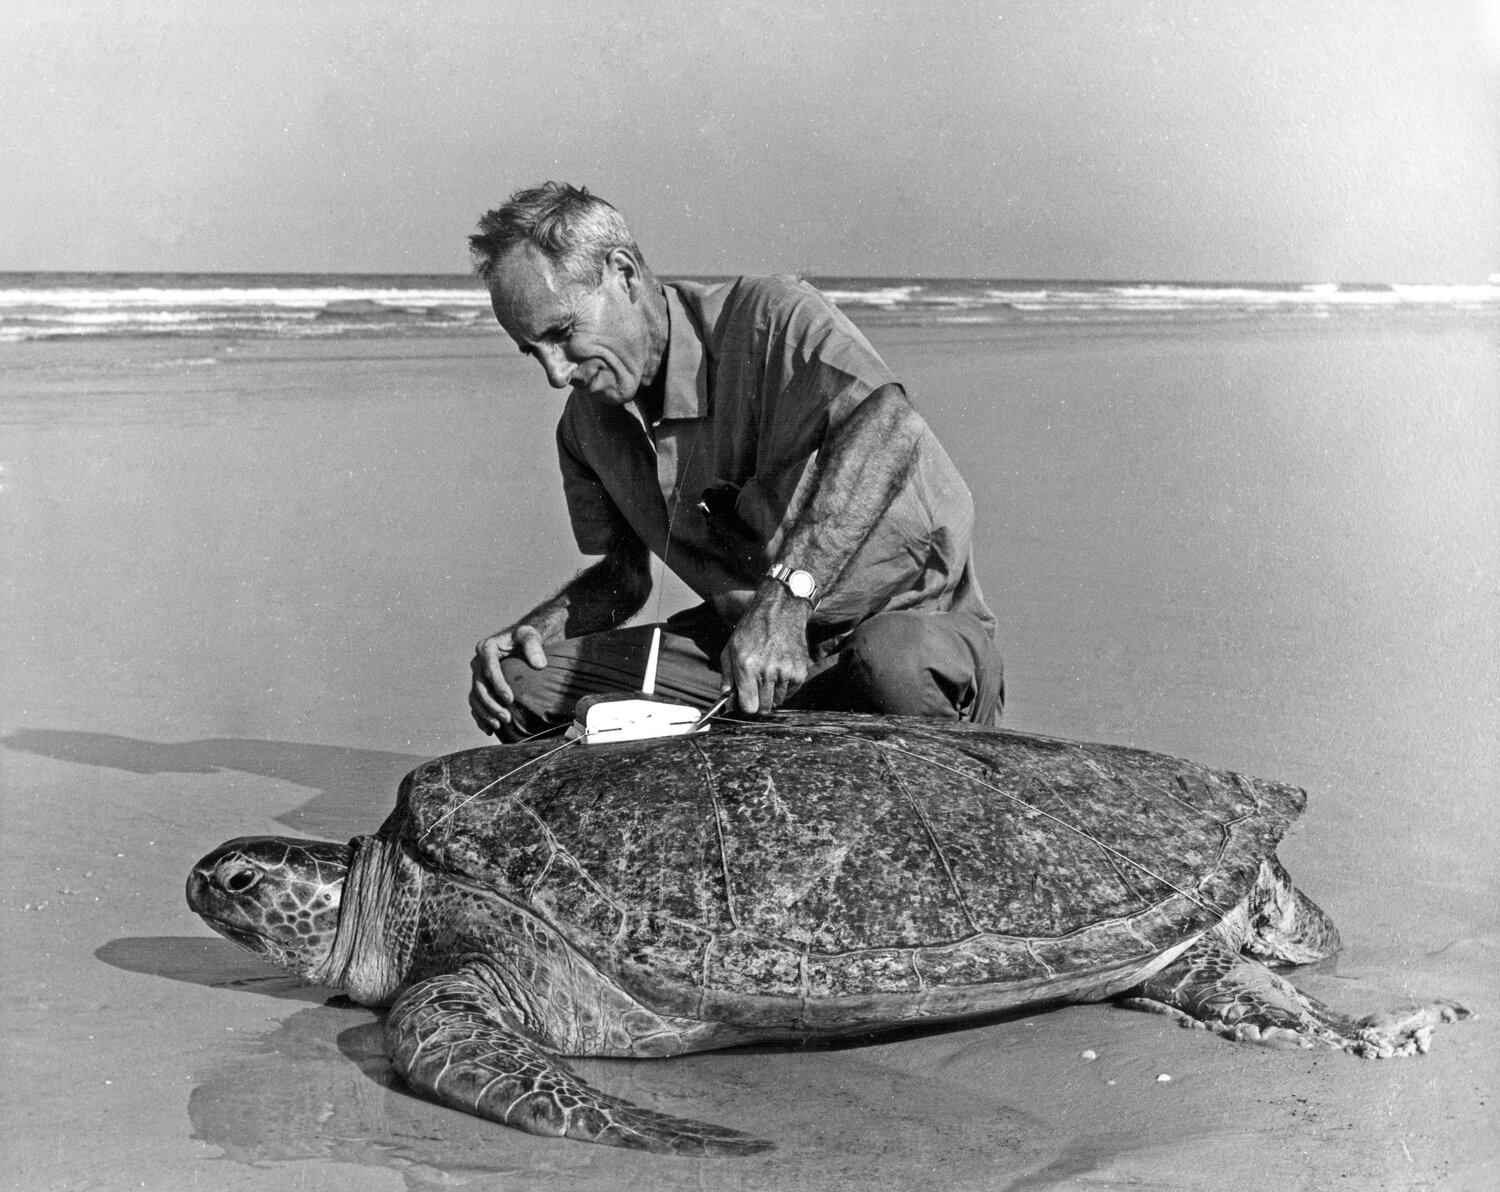 Episode 1: Dr. Archie Carr — SEE Turtles